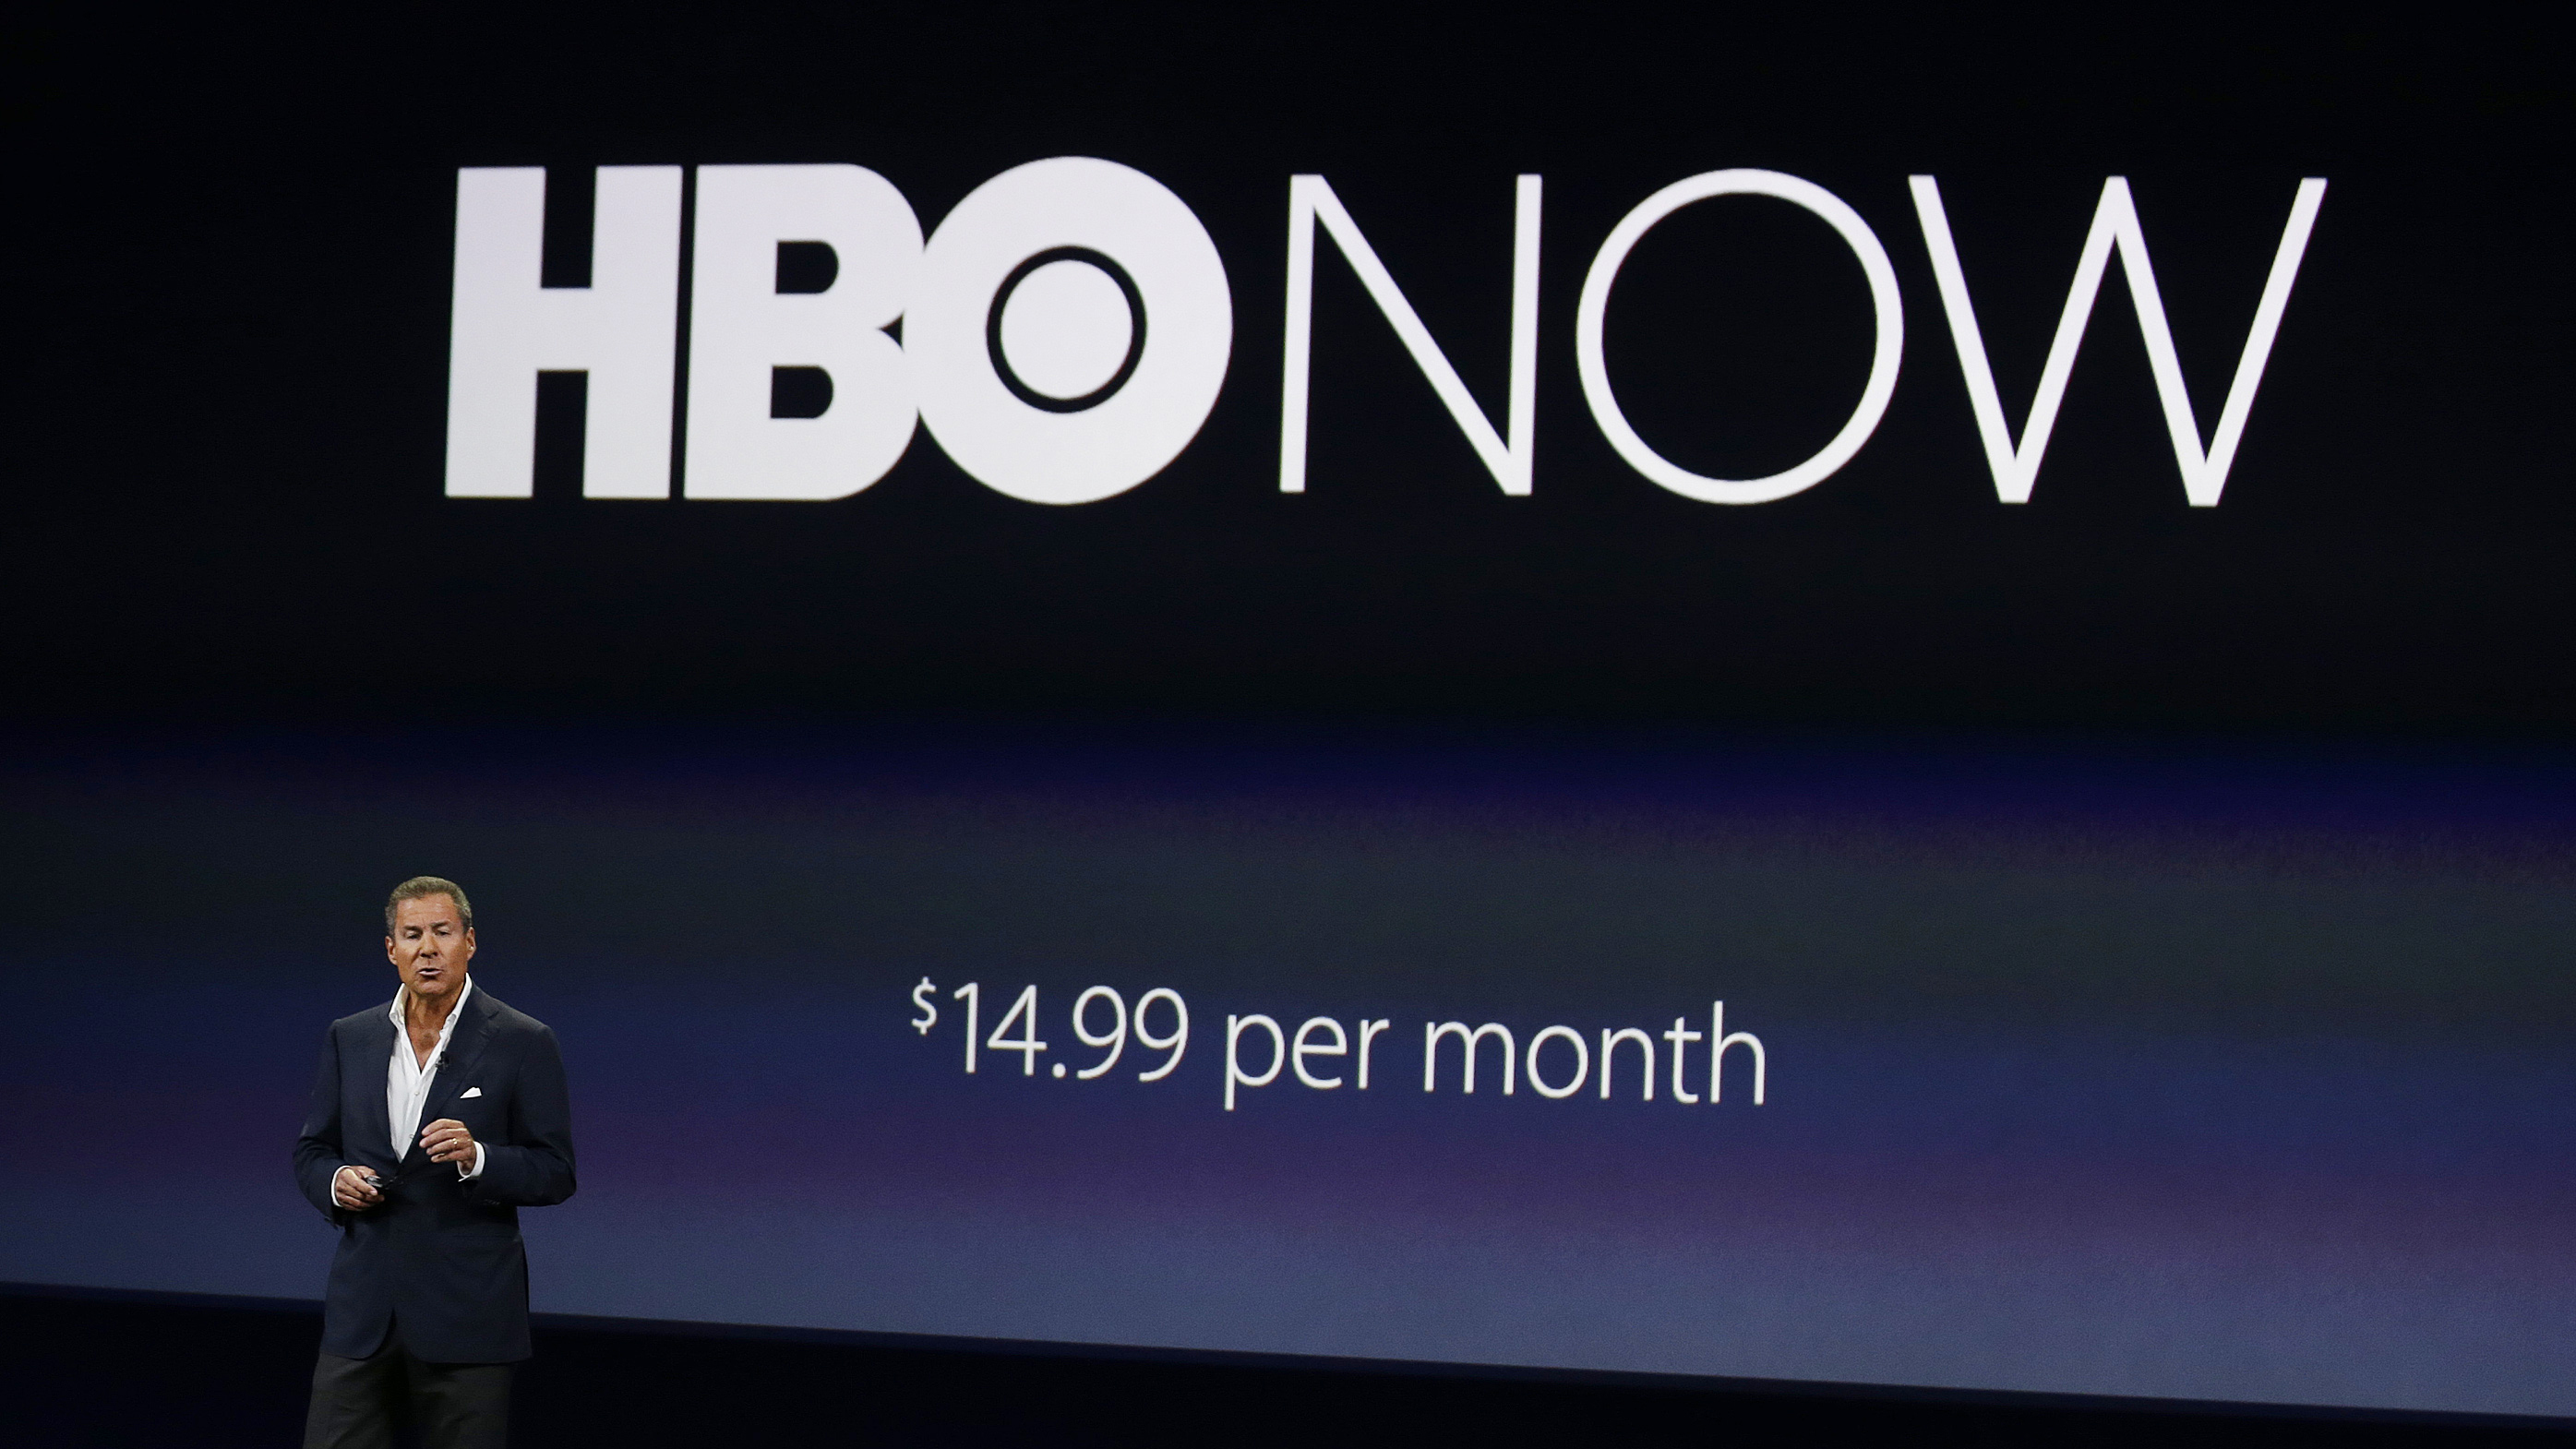 New HBO Now Streaming Service Shows Consumer's Will Is King